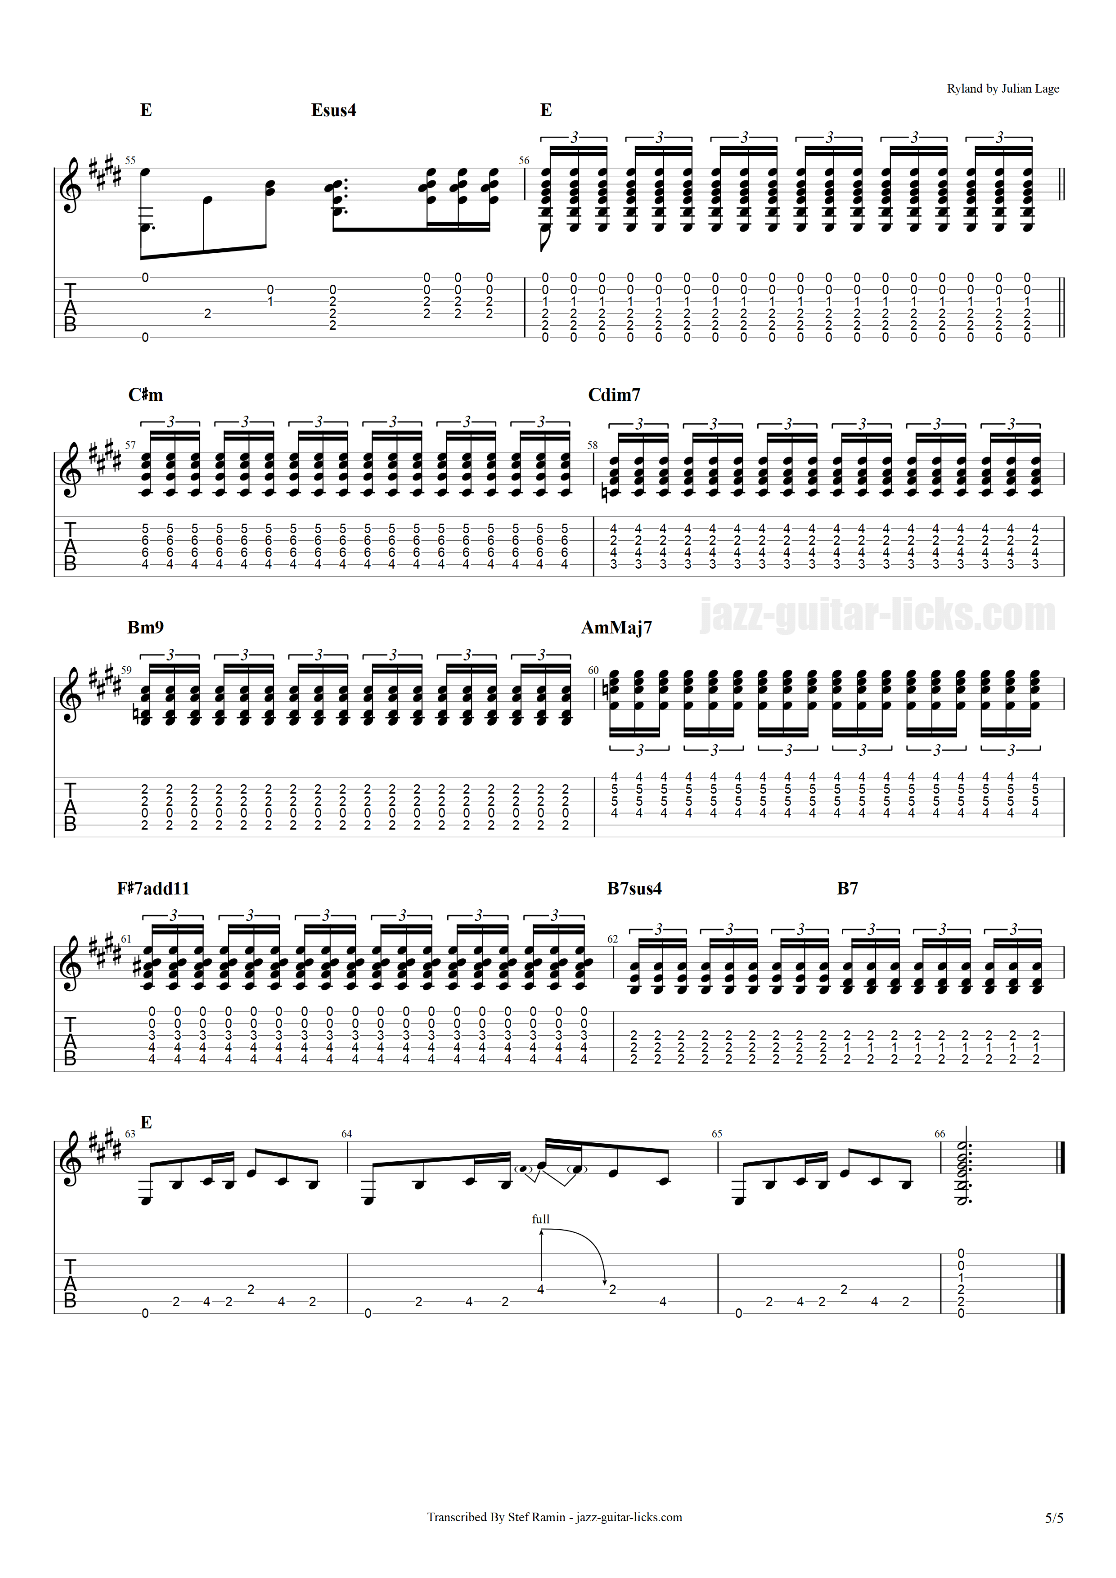 Ryland julian lage guitar transcription with tabs part 5